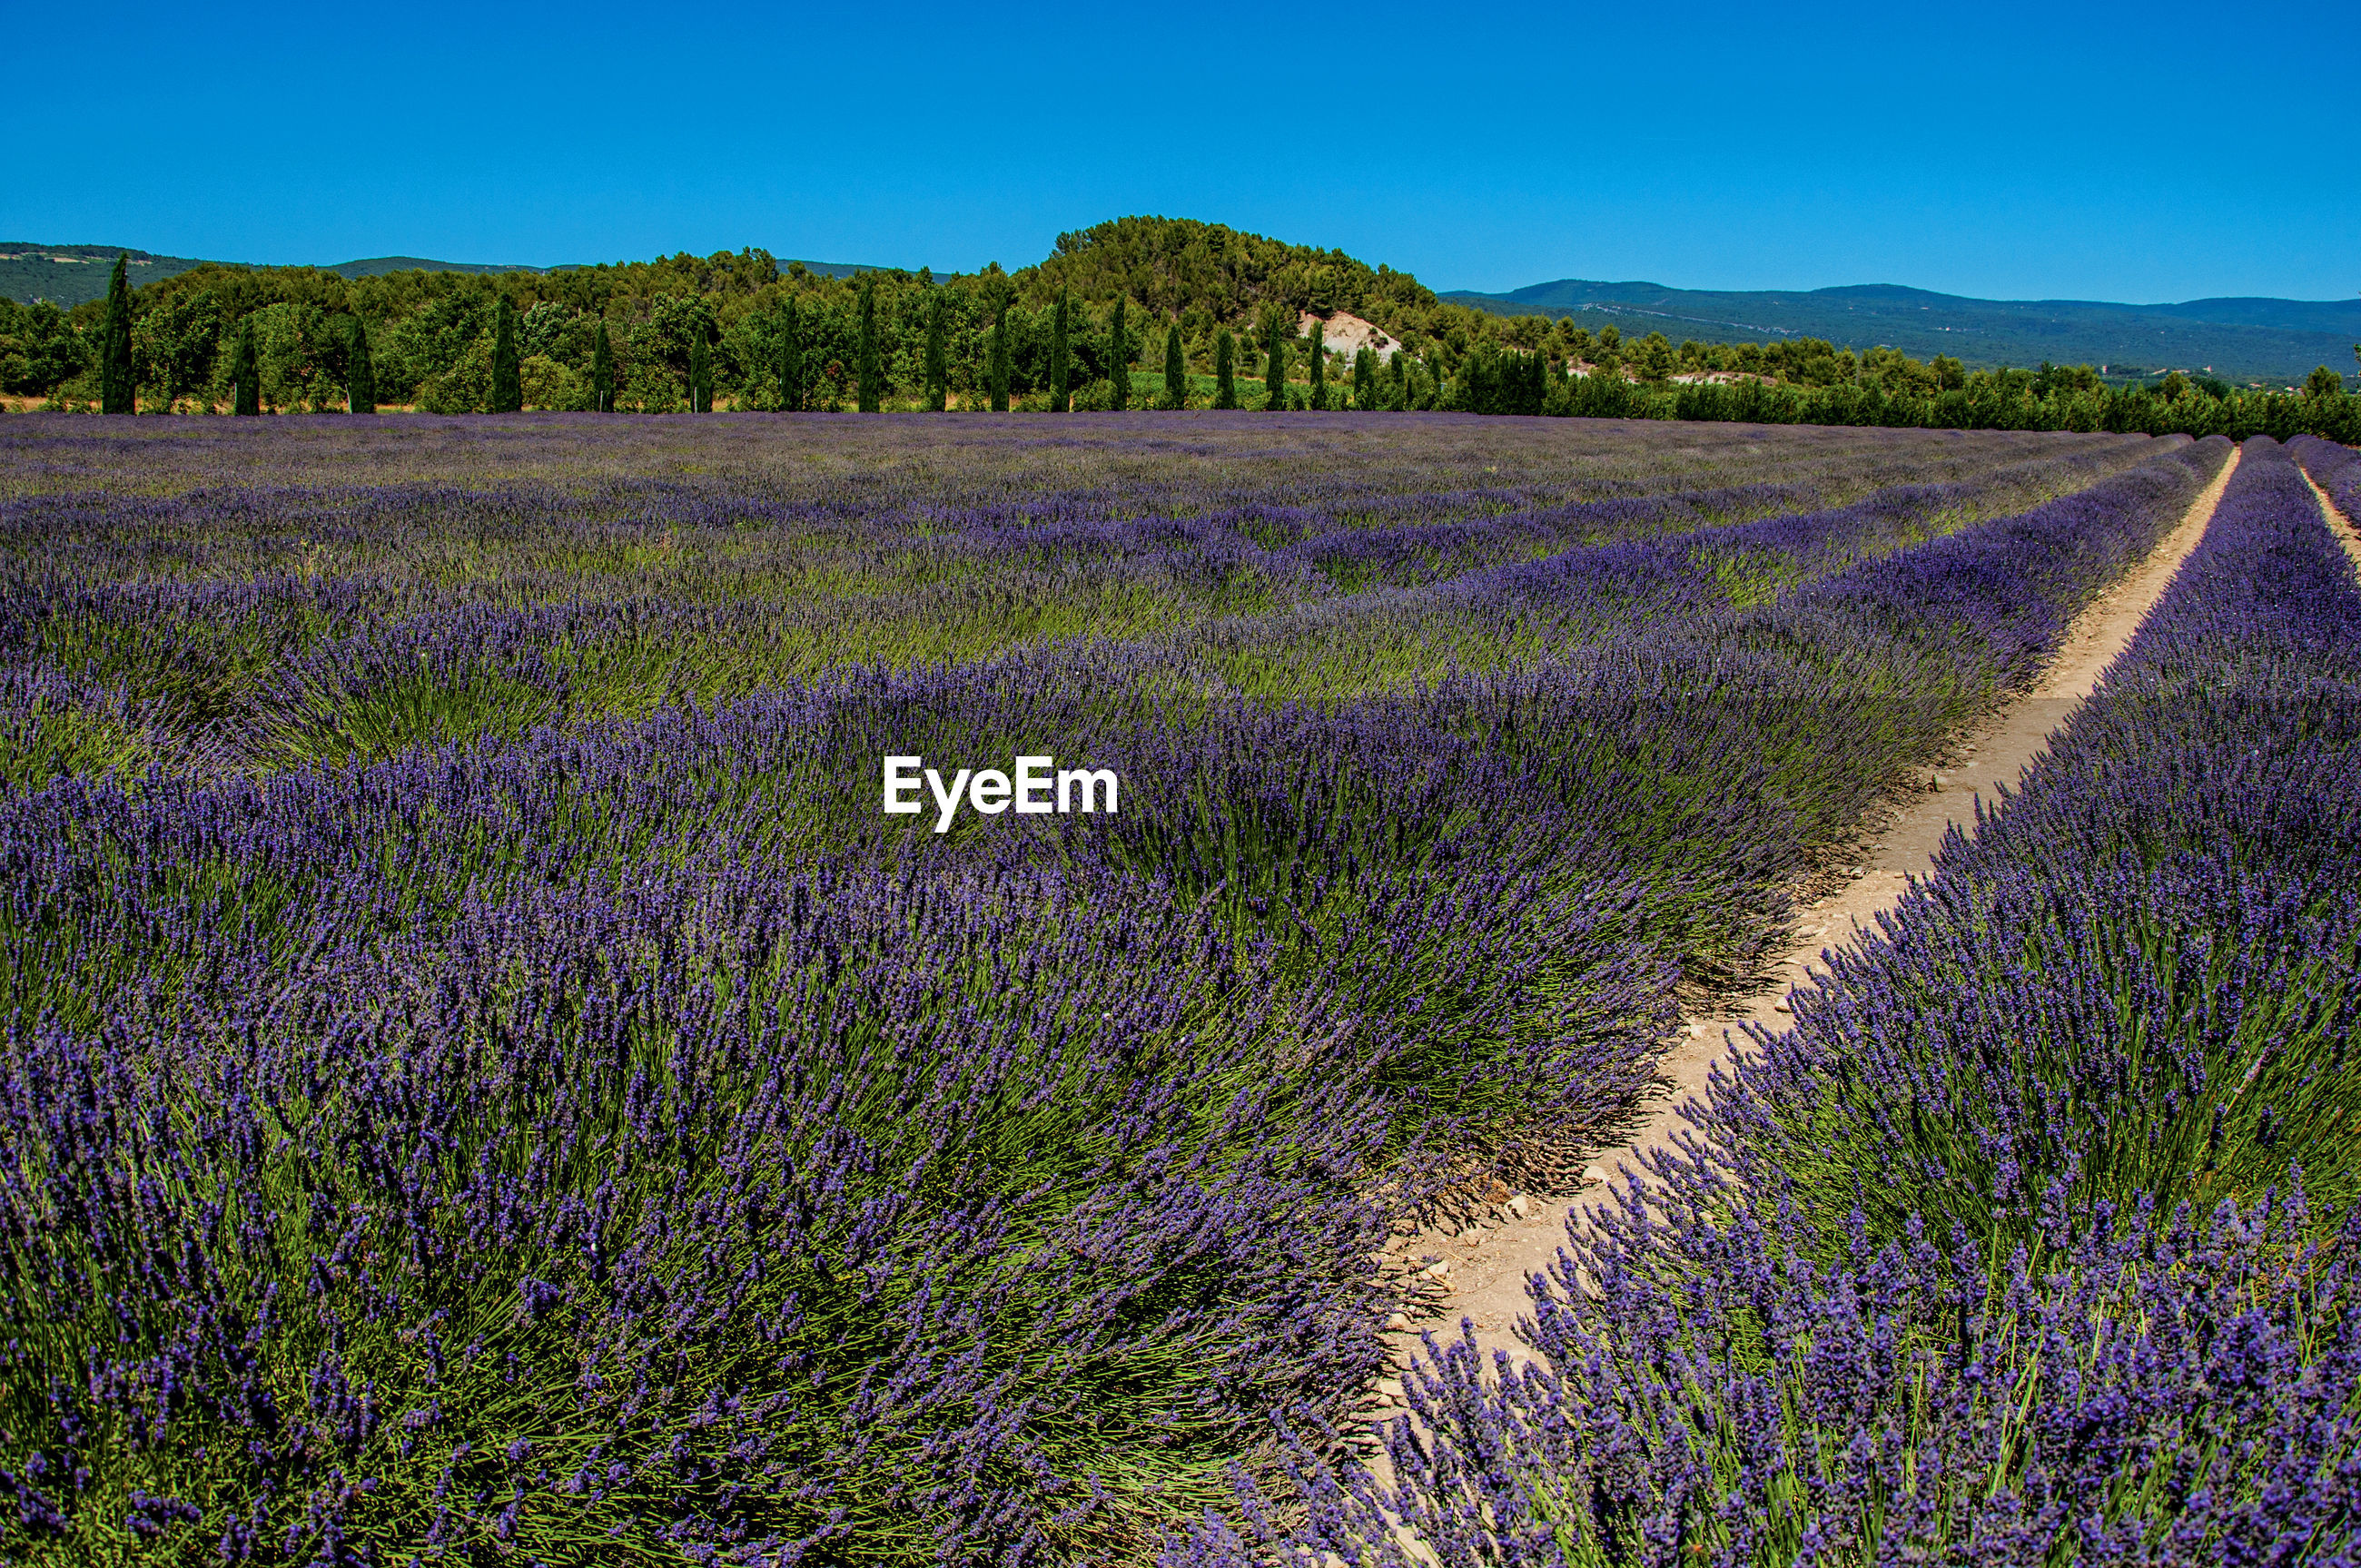 SCENIC VIEW OF FIELD AND PURPLE FLOWERS